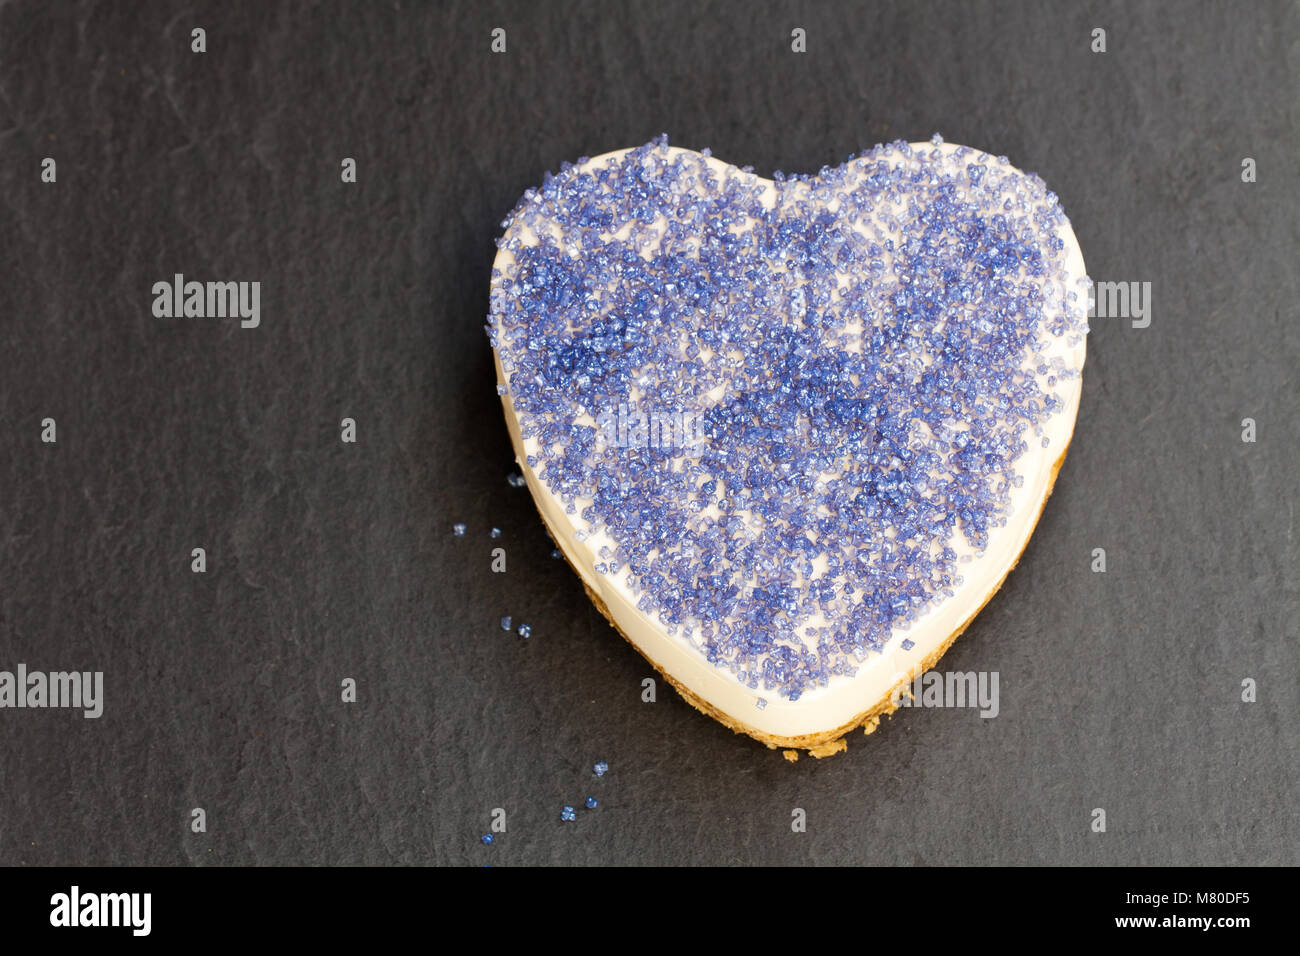 Valentines  day dessert. Heart shaped cheesecake with blue glimmer sugar. - Stock Image